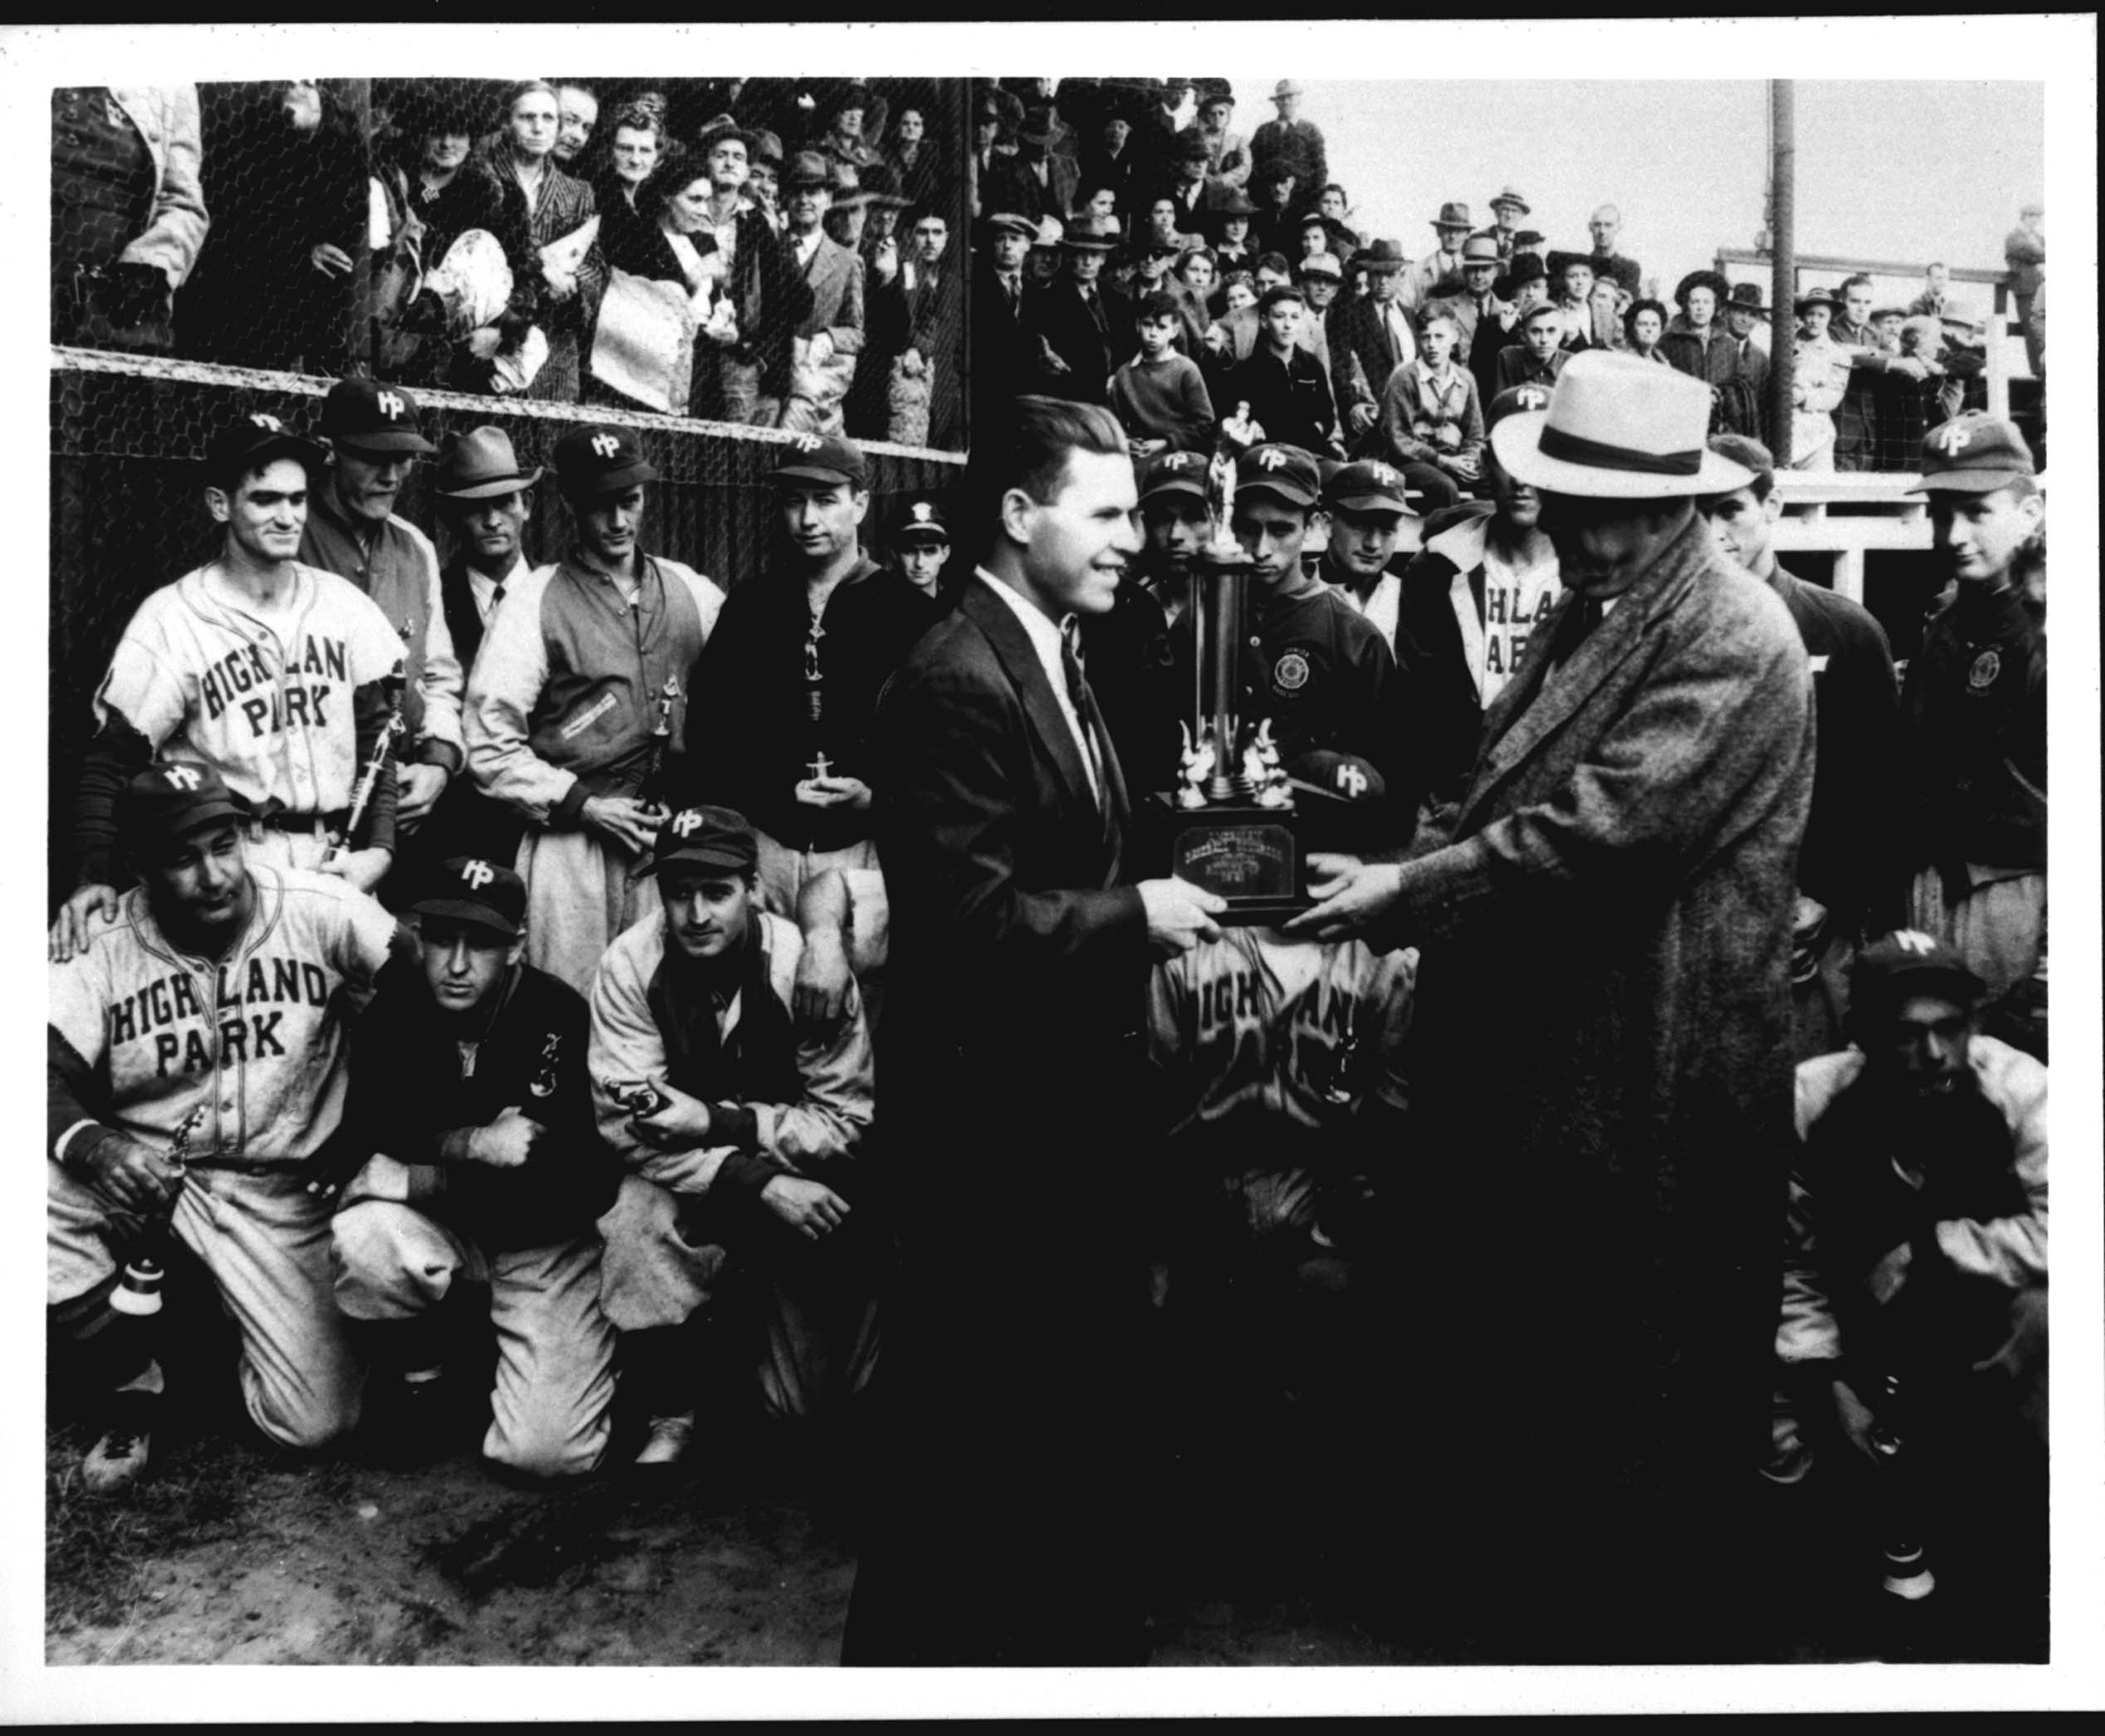 Luther Brackett began working at the Highland Mill Park #3 in 1934. He started as a trainee, but eventually became the General Manager of the mill until it closed in 1969. Brackett accepted, on behalf of the Highland Park baseball team, a trophy for placing second in the 1941 National Amateur World Series in Battle Creek, Michigan.